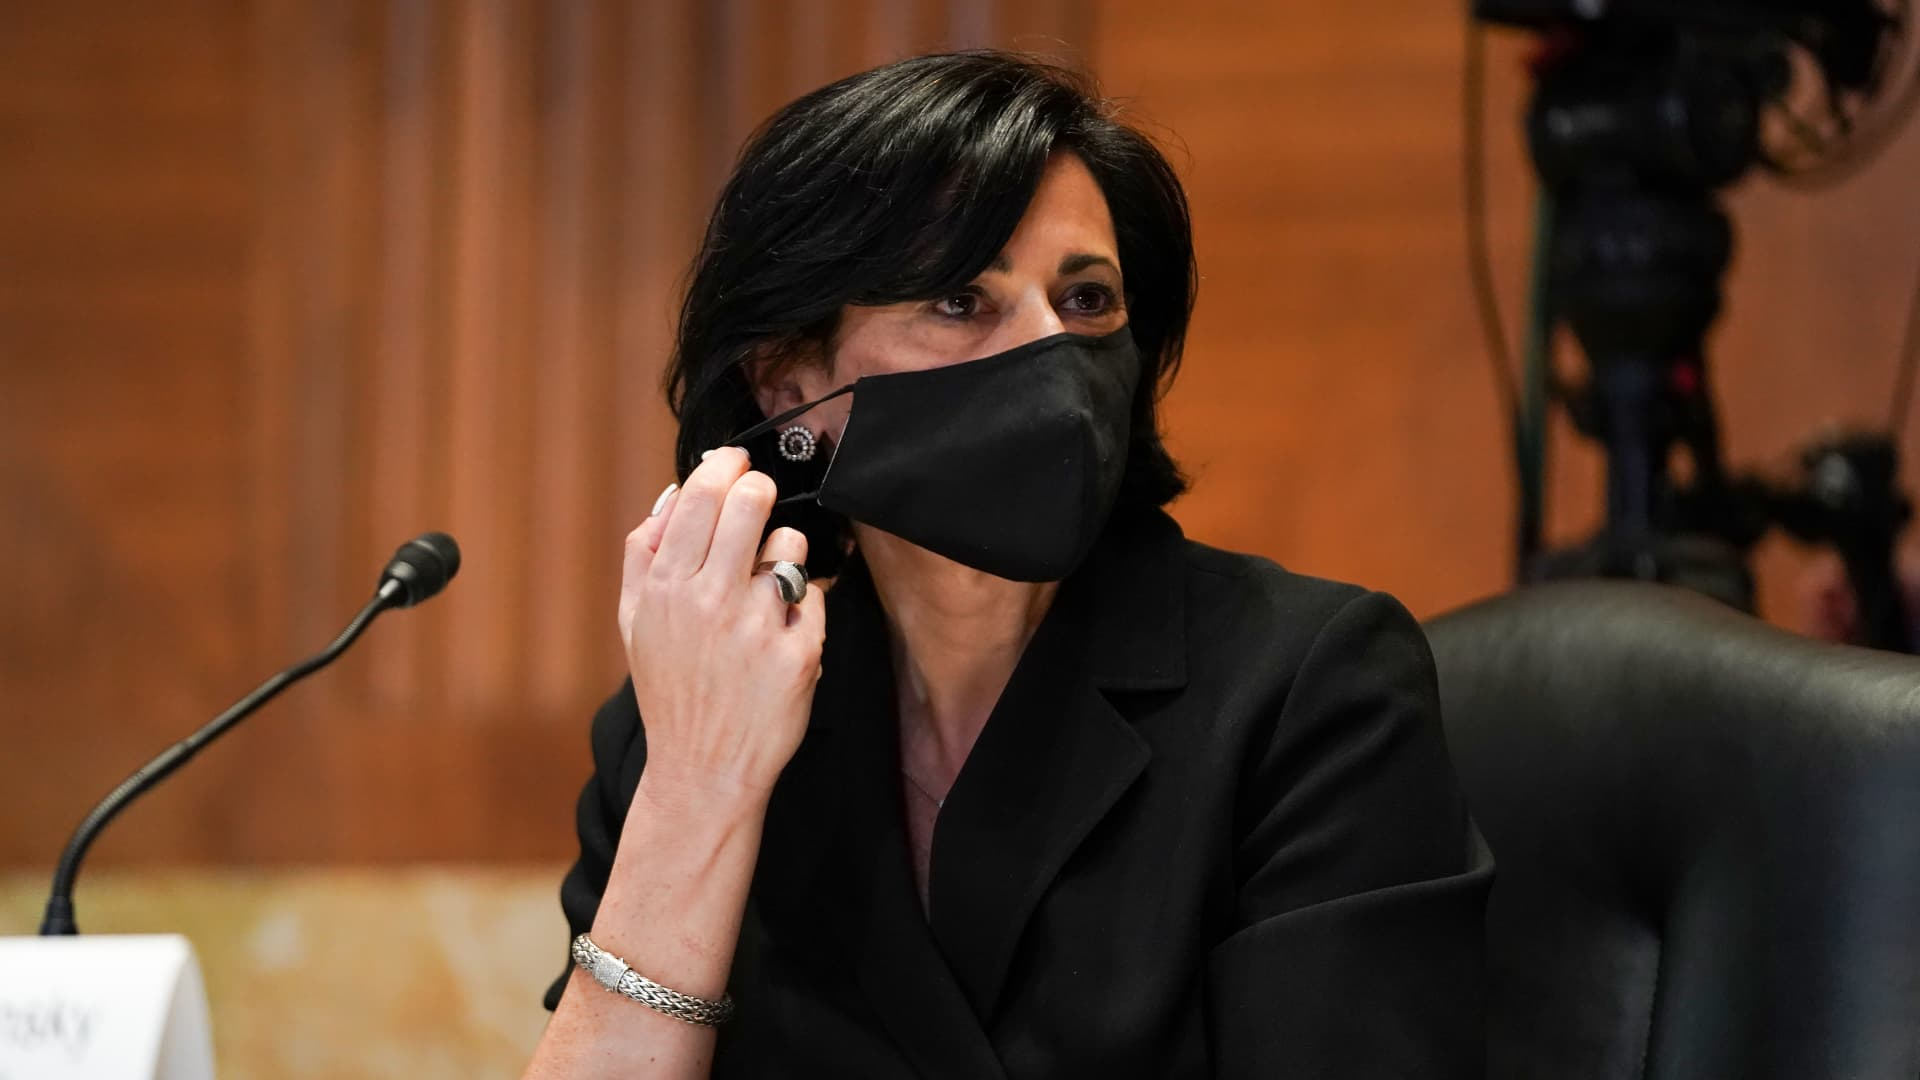 Rochelle Walensky, director of the U.S. Centers for Disease Control and Prevention (CDC), takes off a protective mask during a Senate Appropriations Subcommittee hearing in Washington, D.C., U.S., on Wednesday, May 19, 2021.